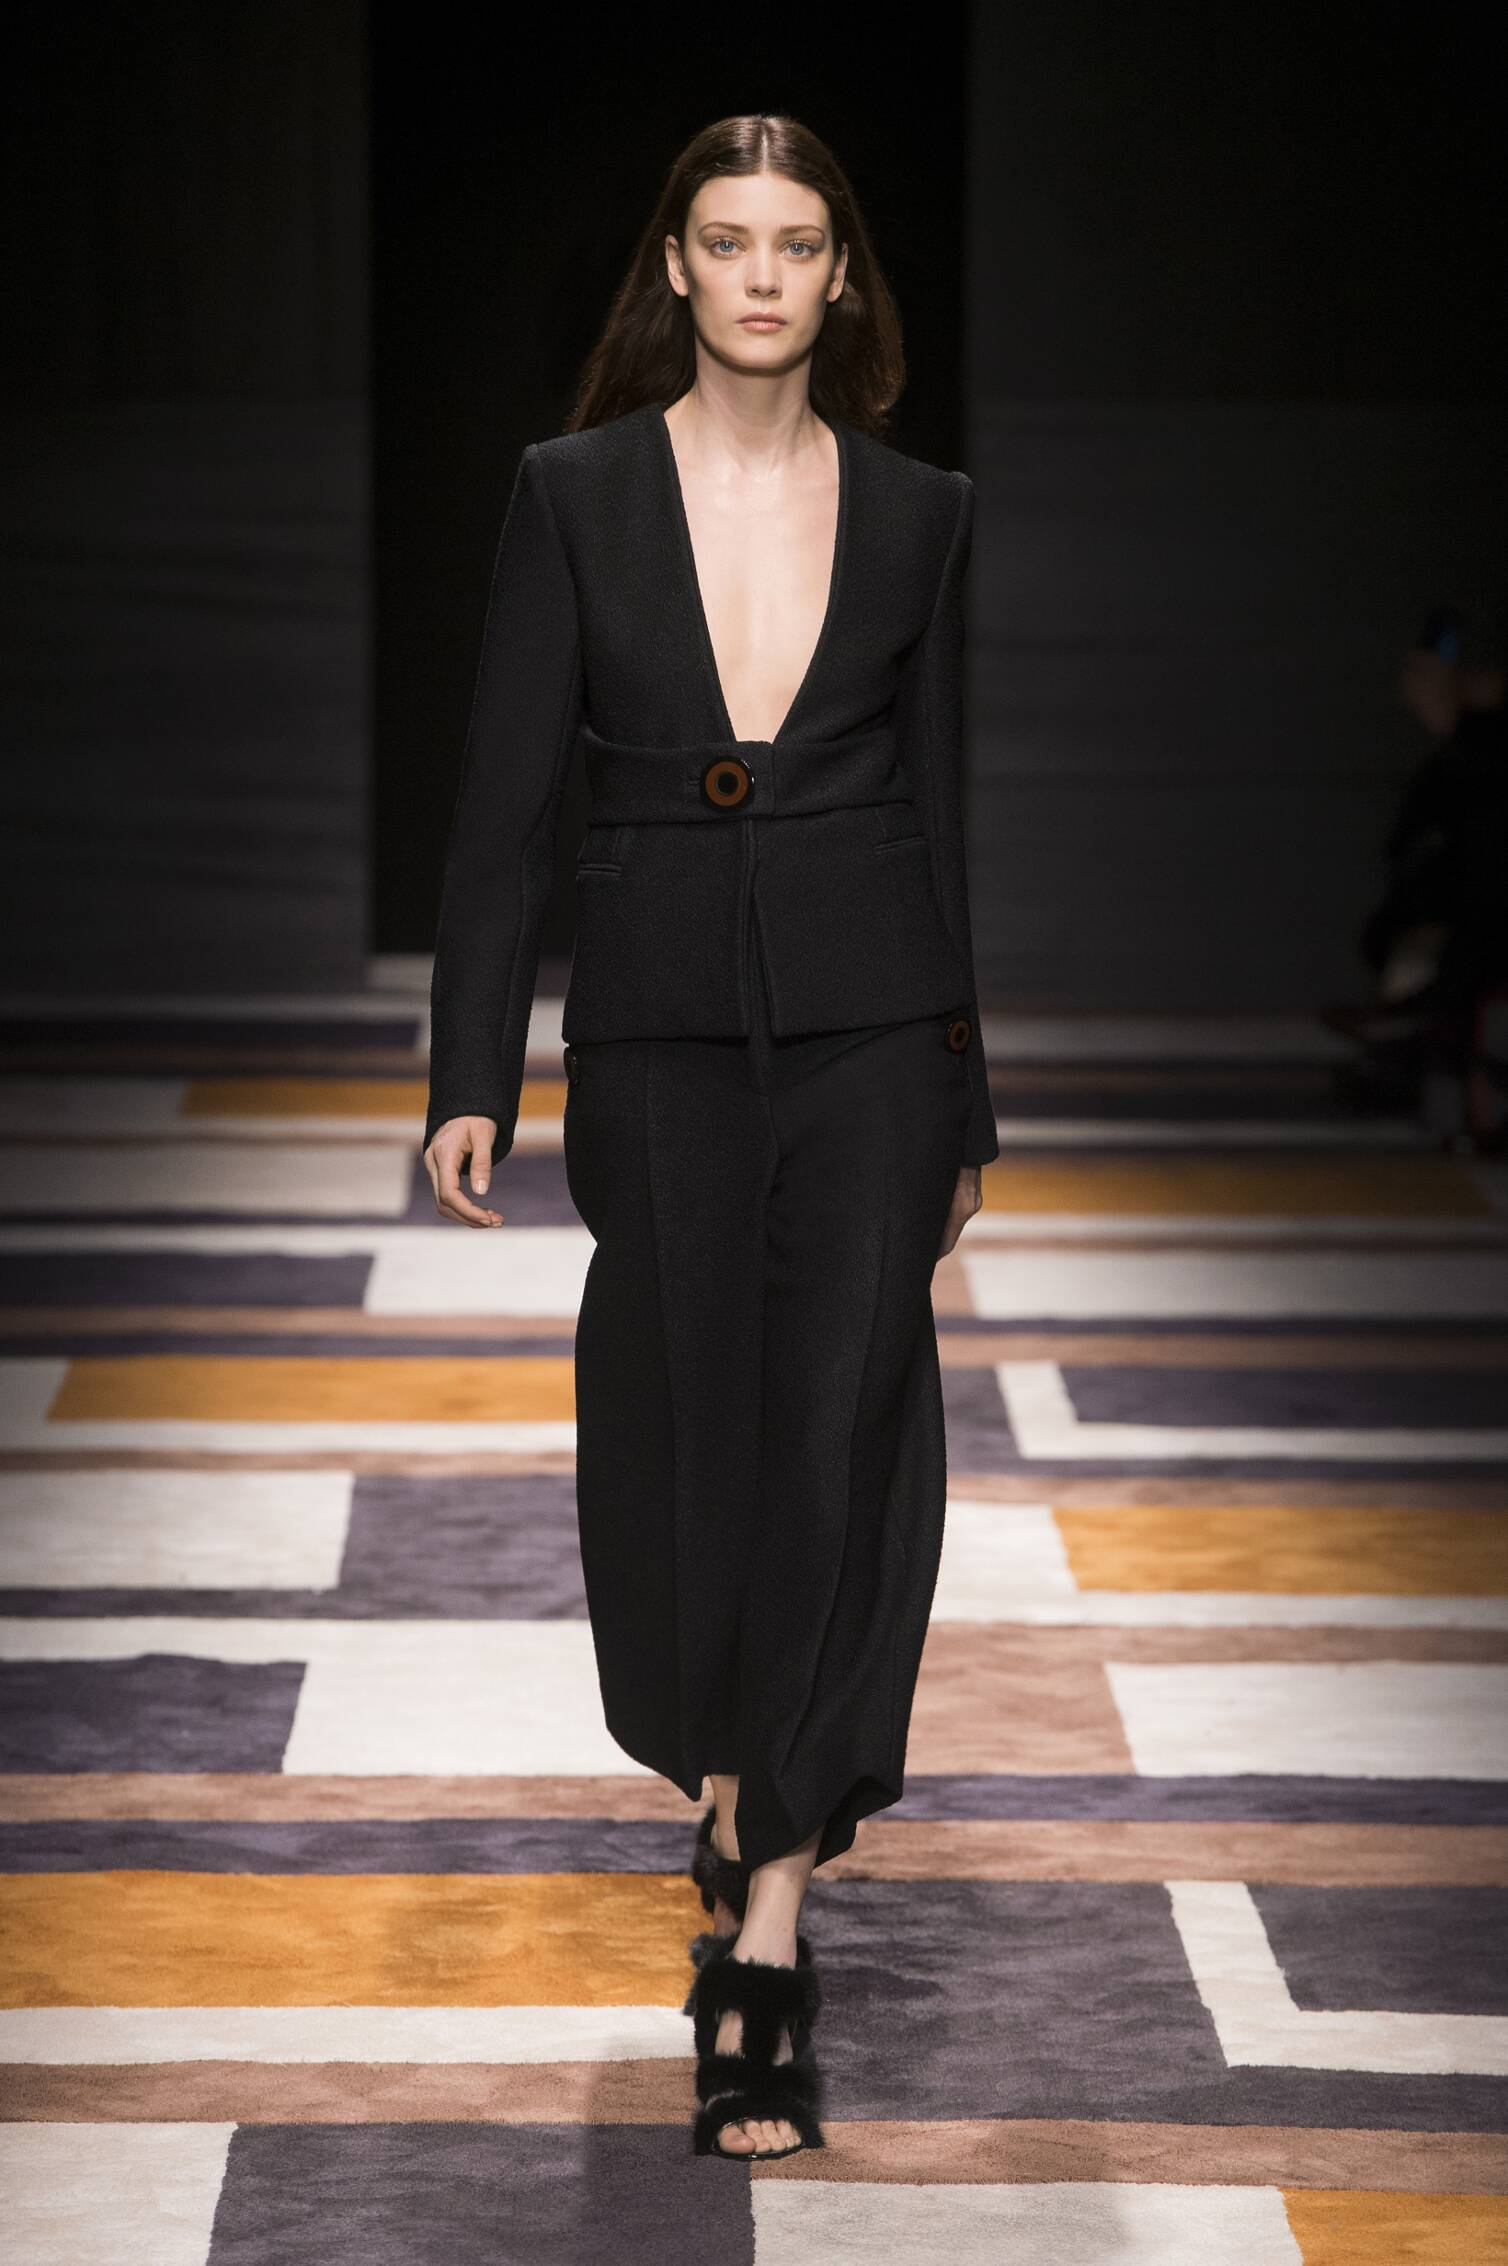 Catwalk Salvatore Ferragamo Fall Winter 2015 16 Women's Collection Milan Fashion Week